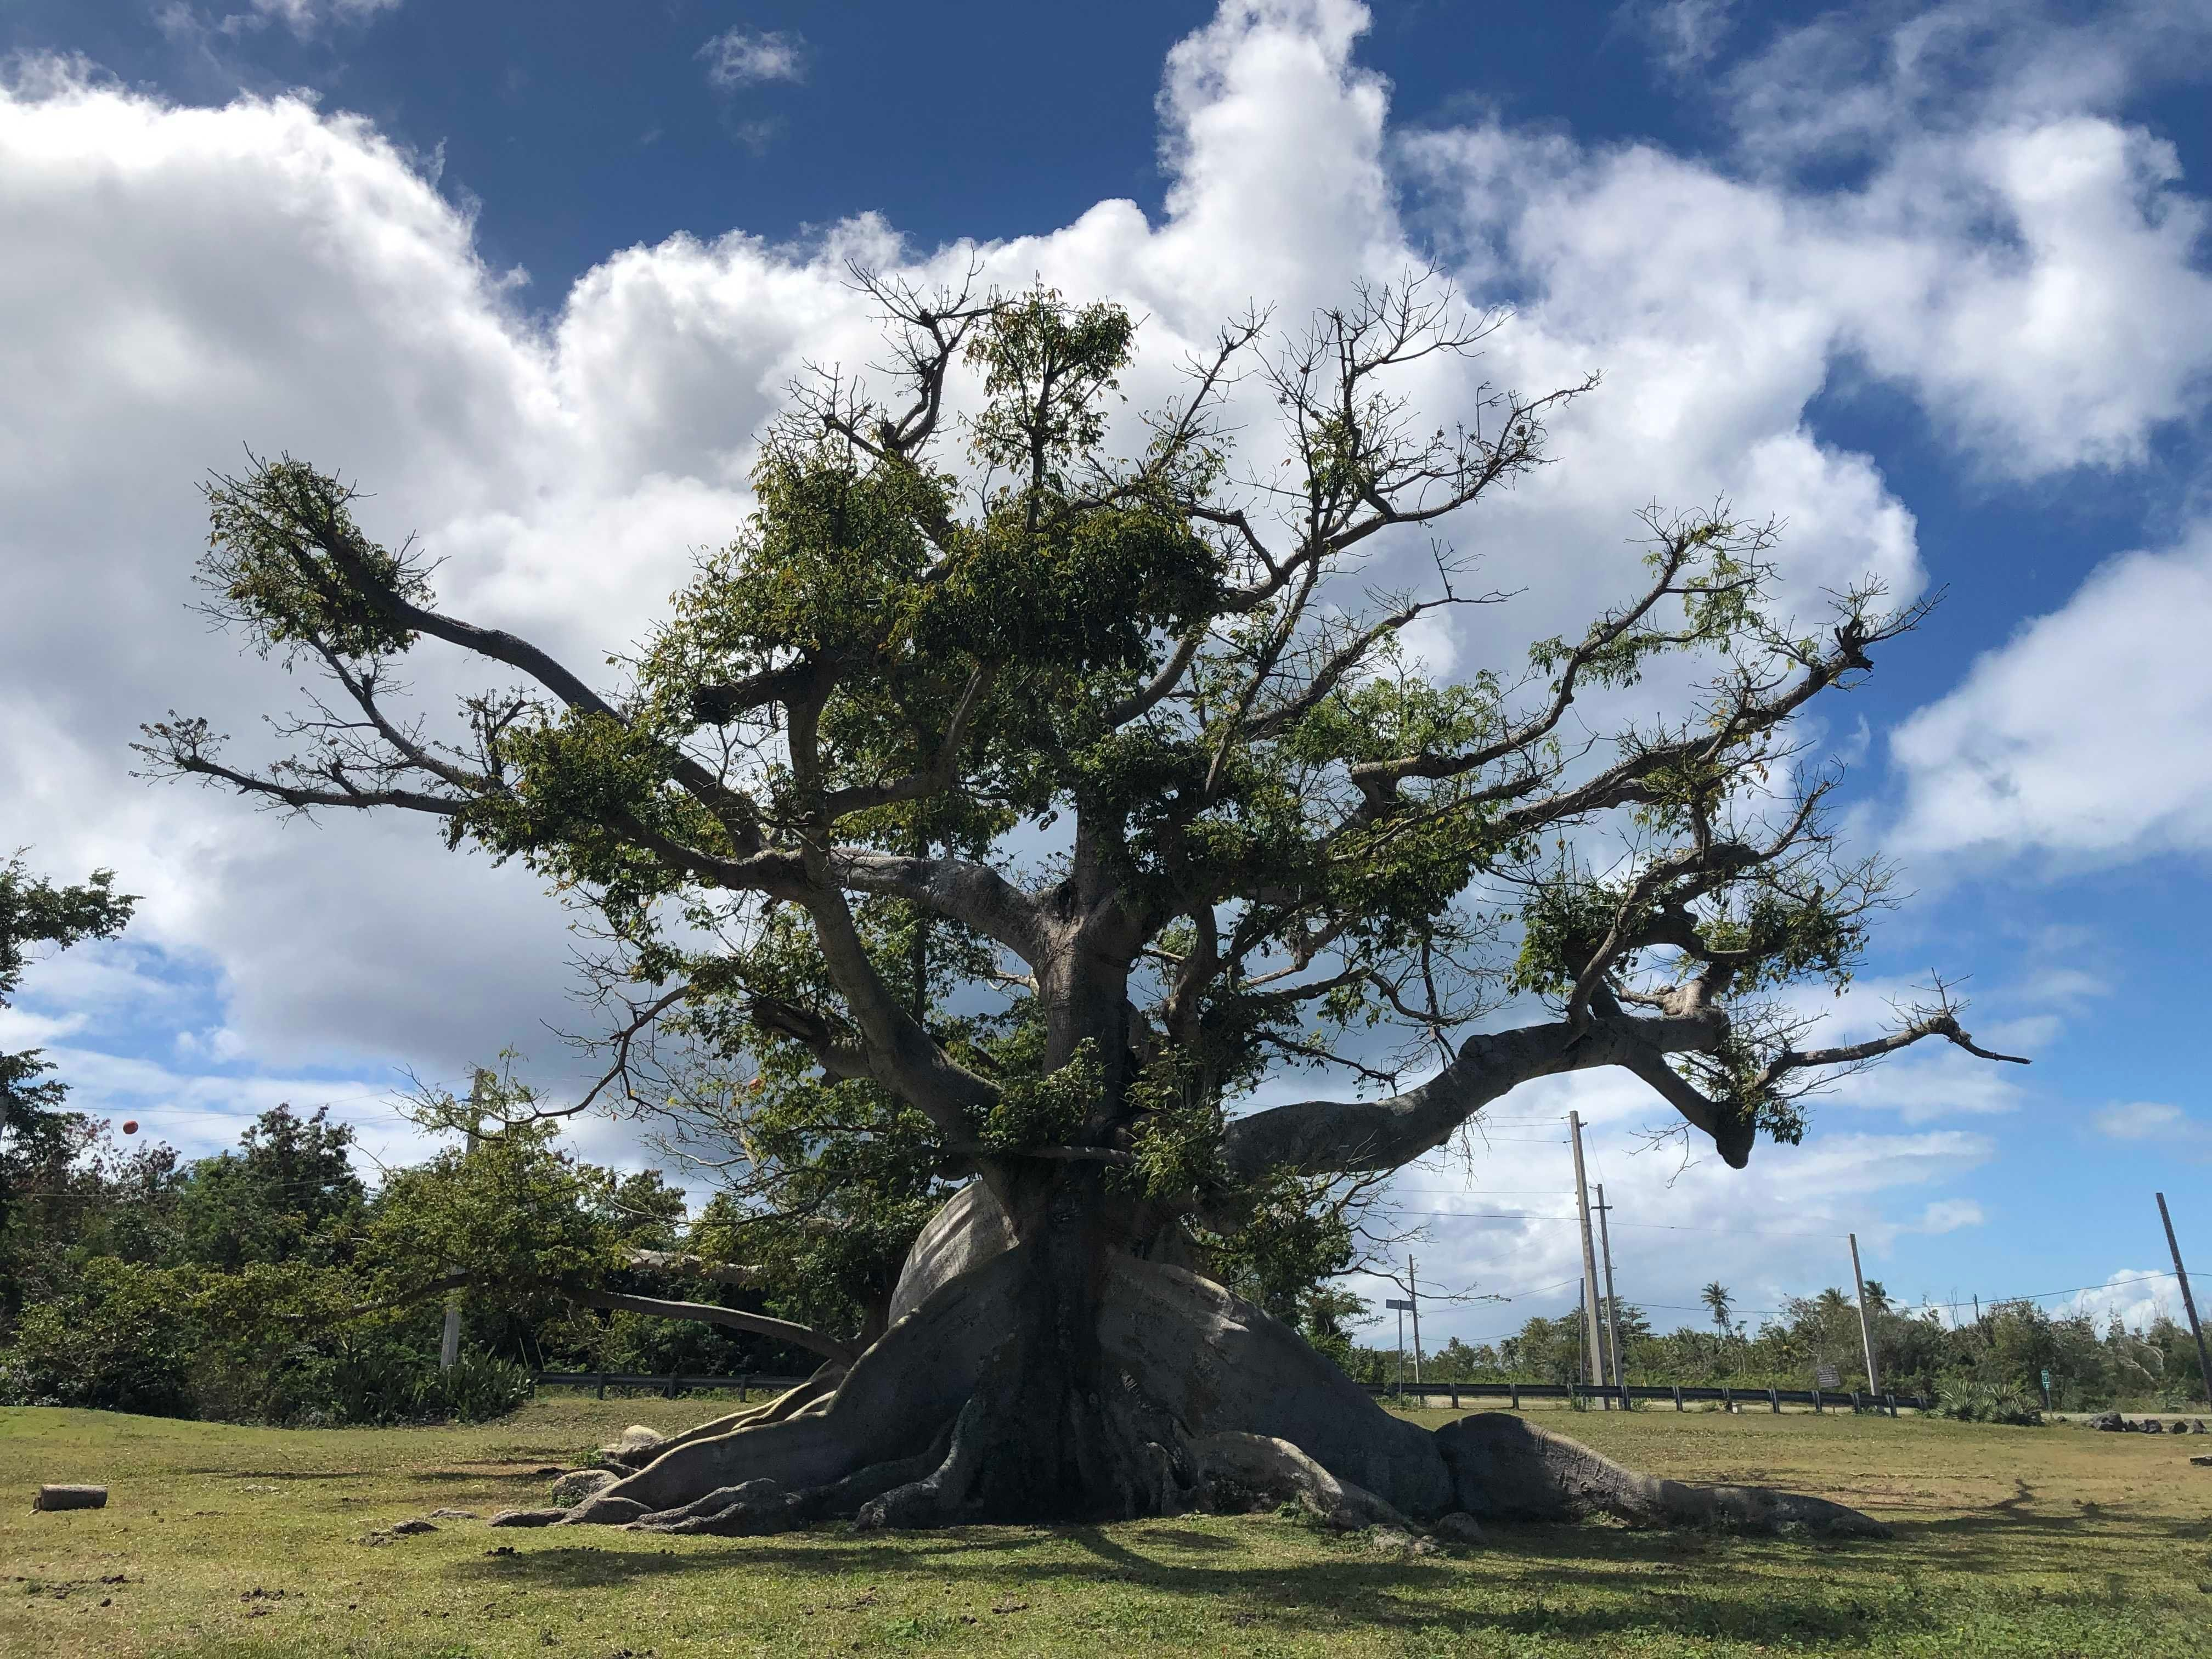 An Ancient Ceiba Tree Blooms Once Again After Puerto Rico's Devastating